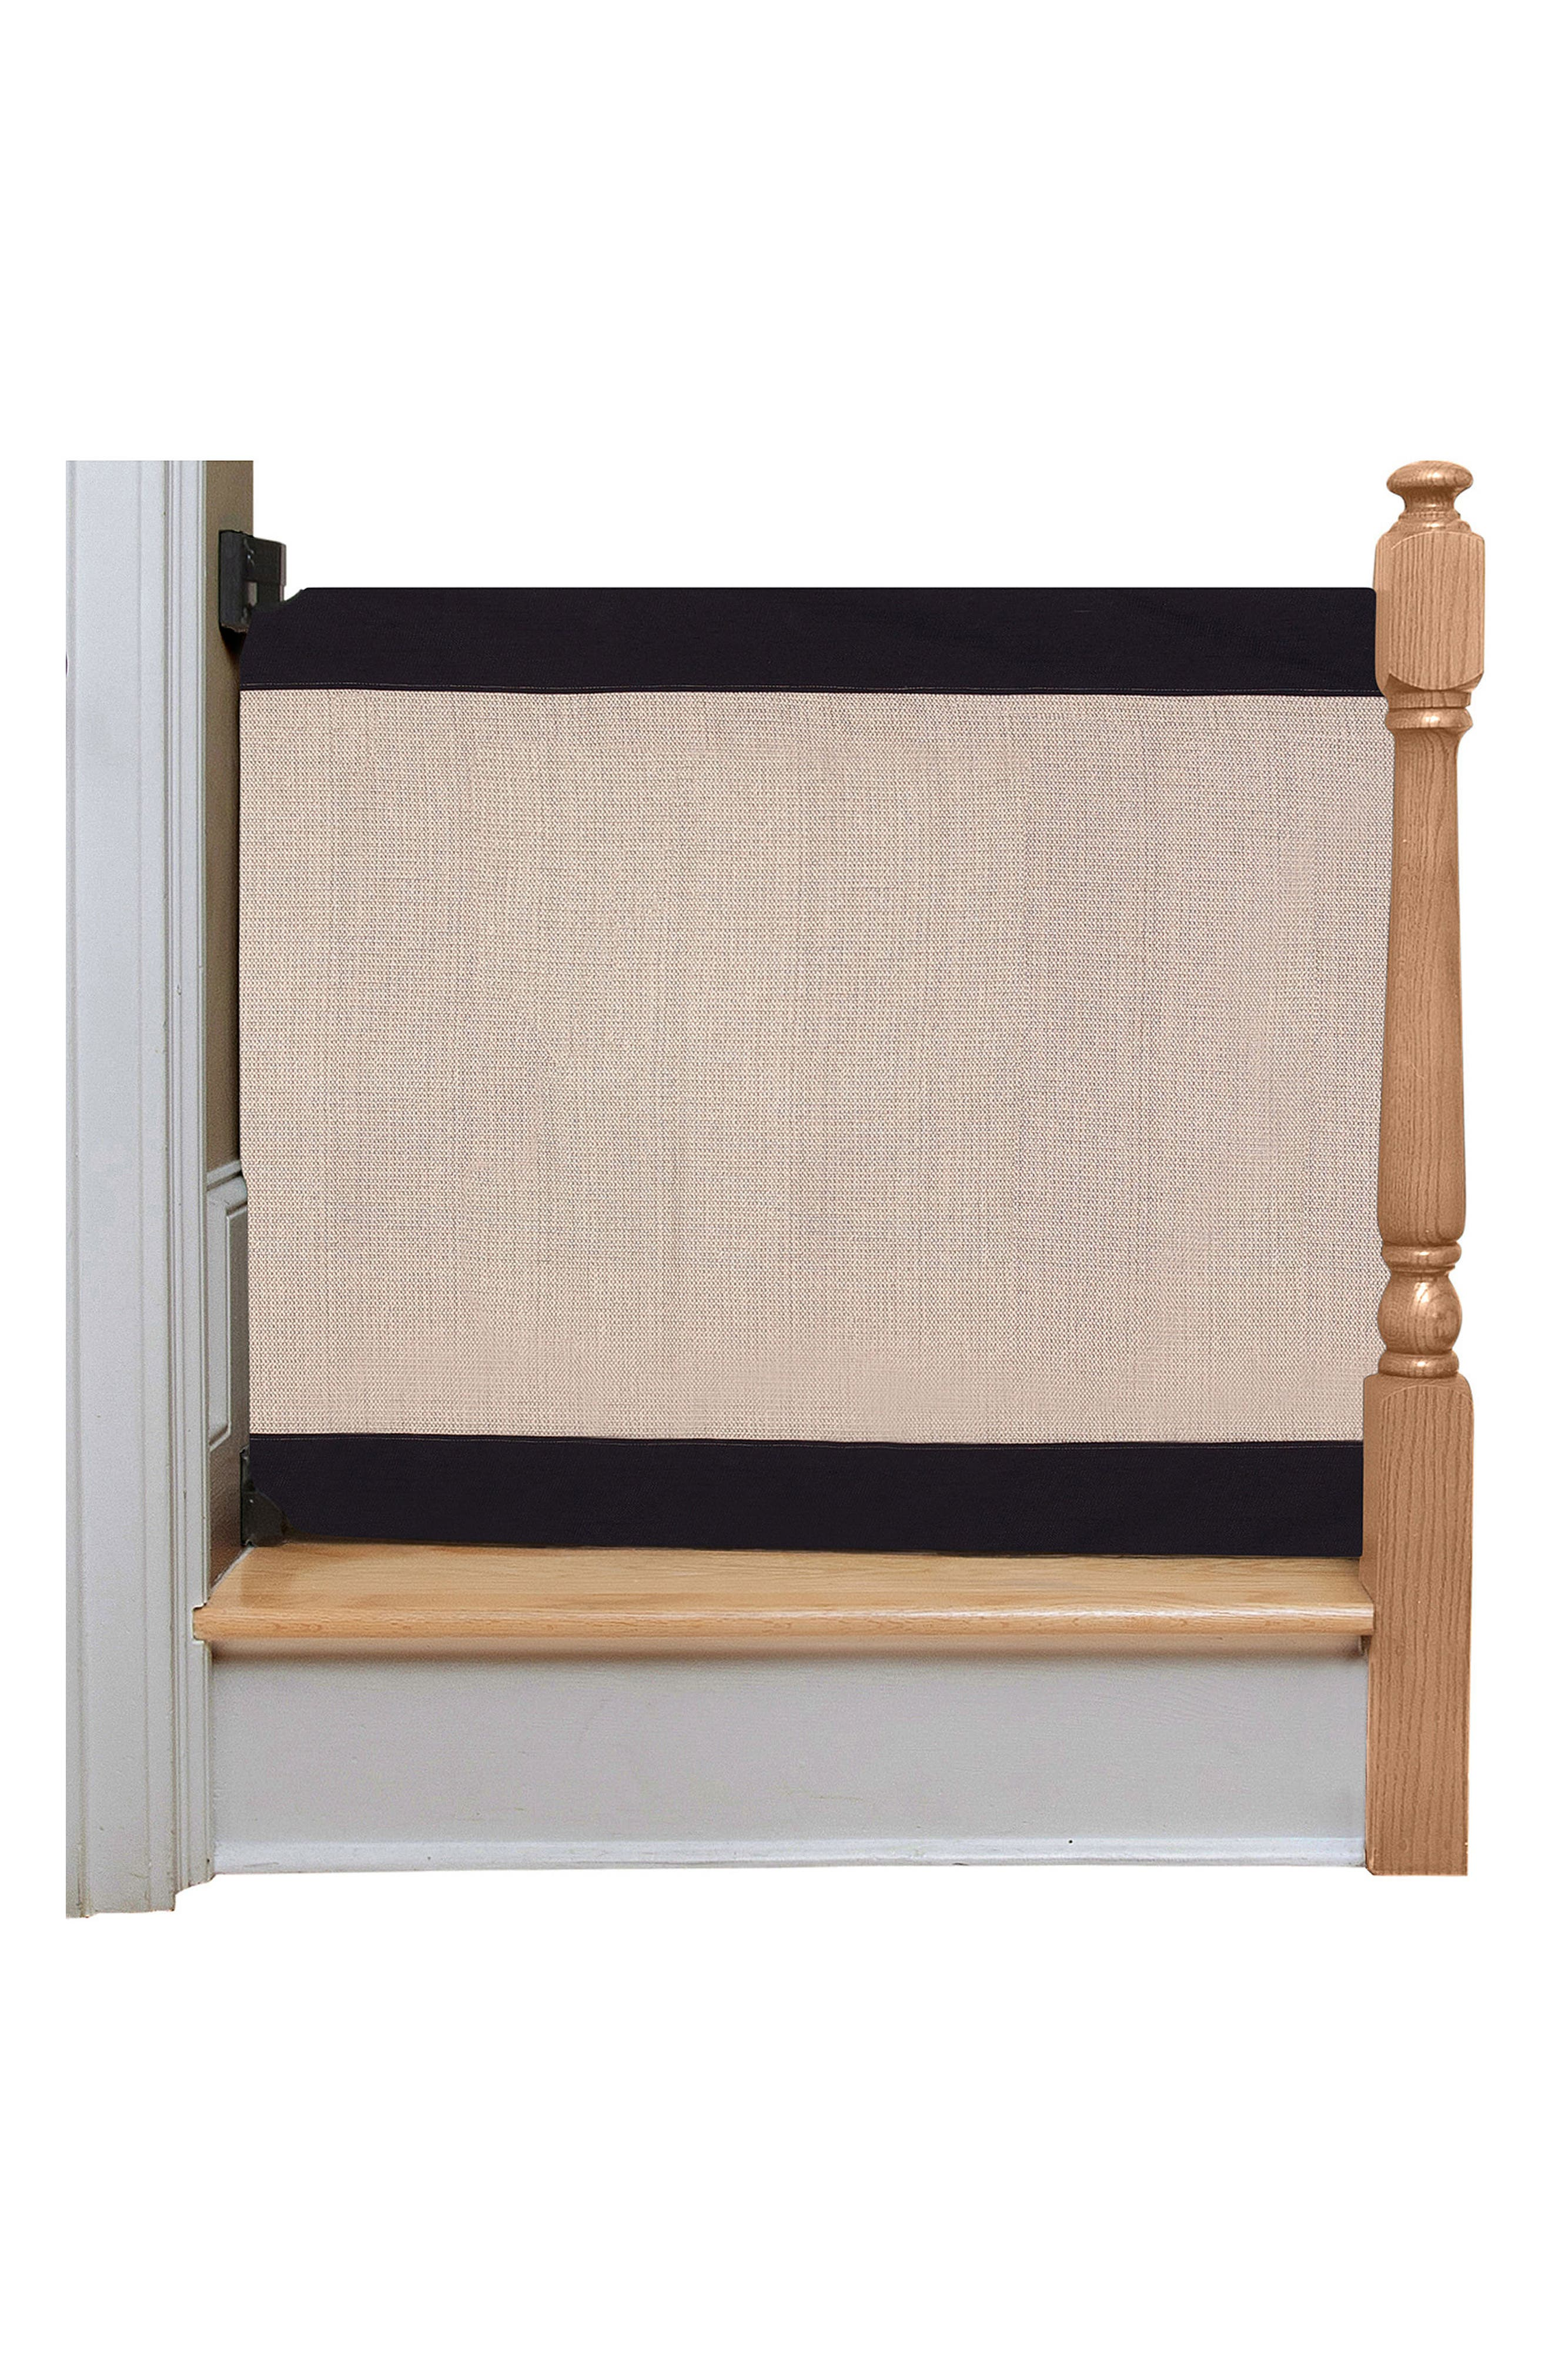 Wall to Banister Regular Width Safety Gate,                         Main,                         color, Black And Tan